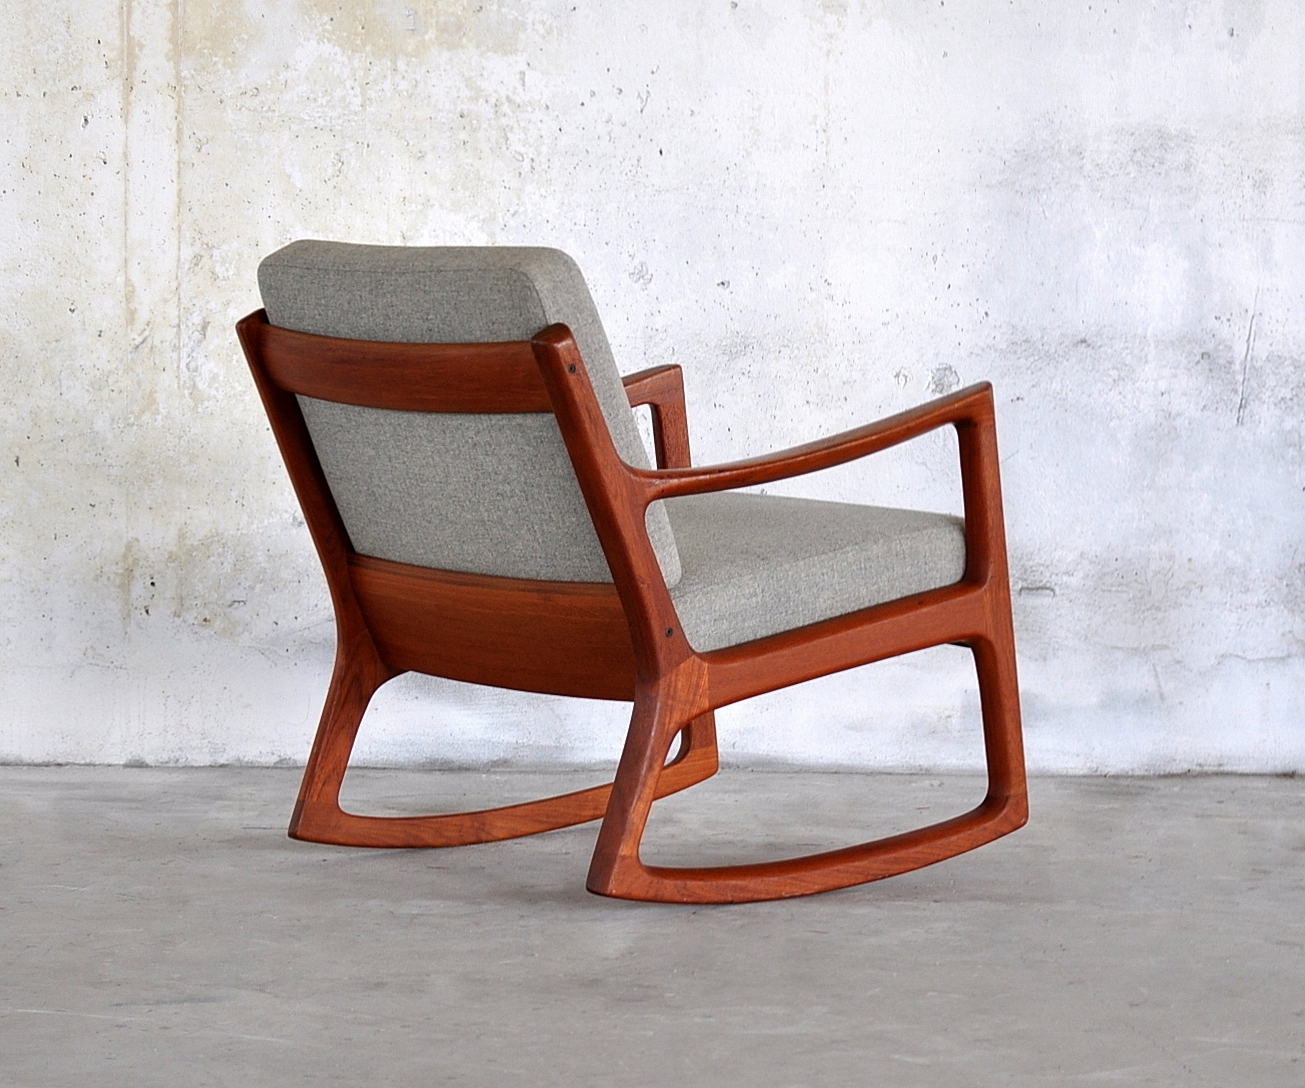 Contemporary Rocking Chair Uk — All Contemporary Design : Unique For Current Modern Patio Rocking Chairs (View 2 of 15)